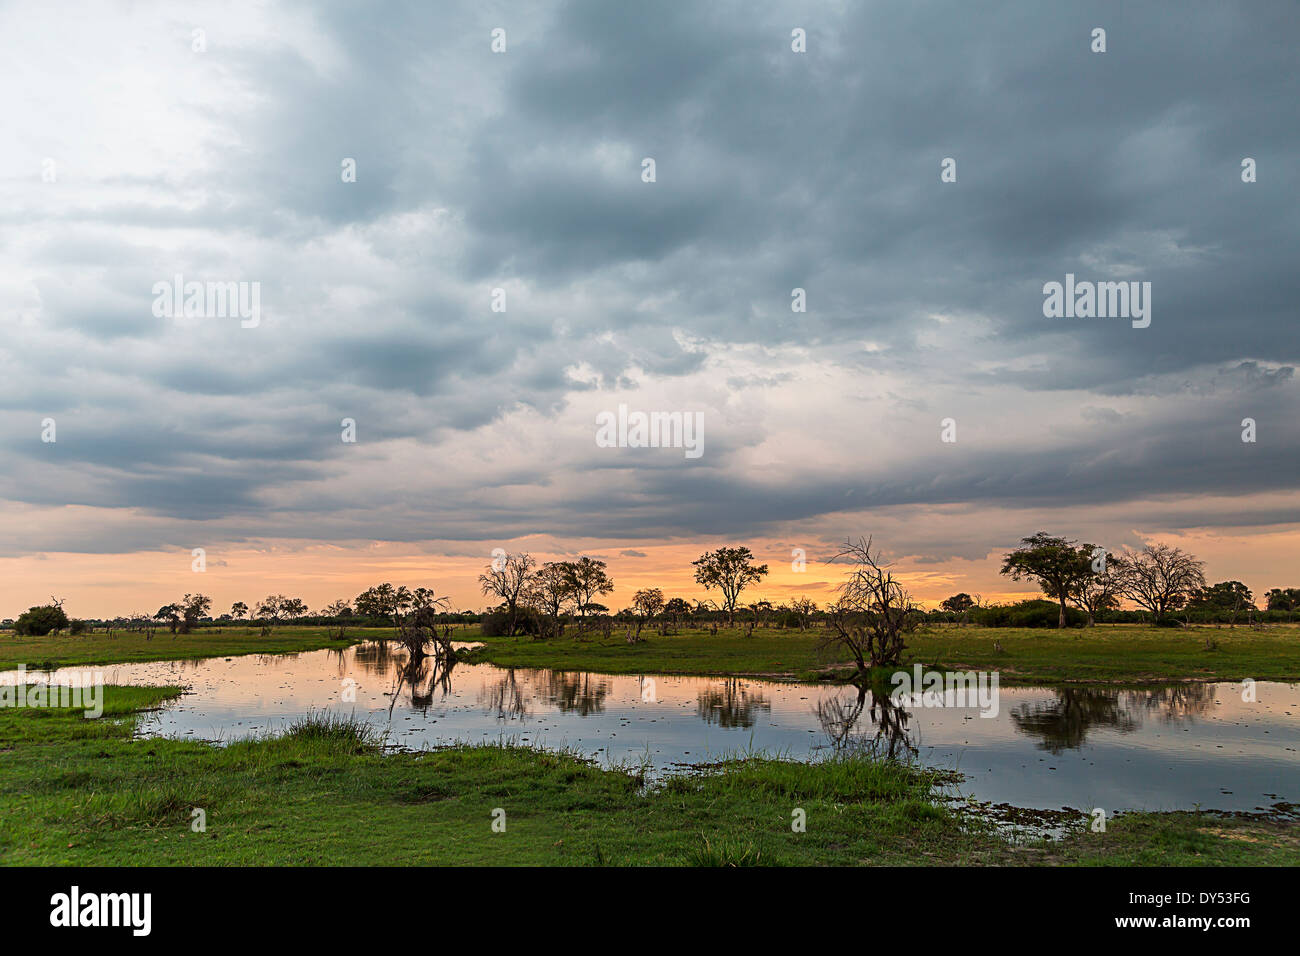 Silhouetted trees and swamp, Okavango Delta, Chobe National Park, Botswana, Africa - Stock Image